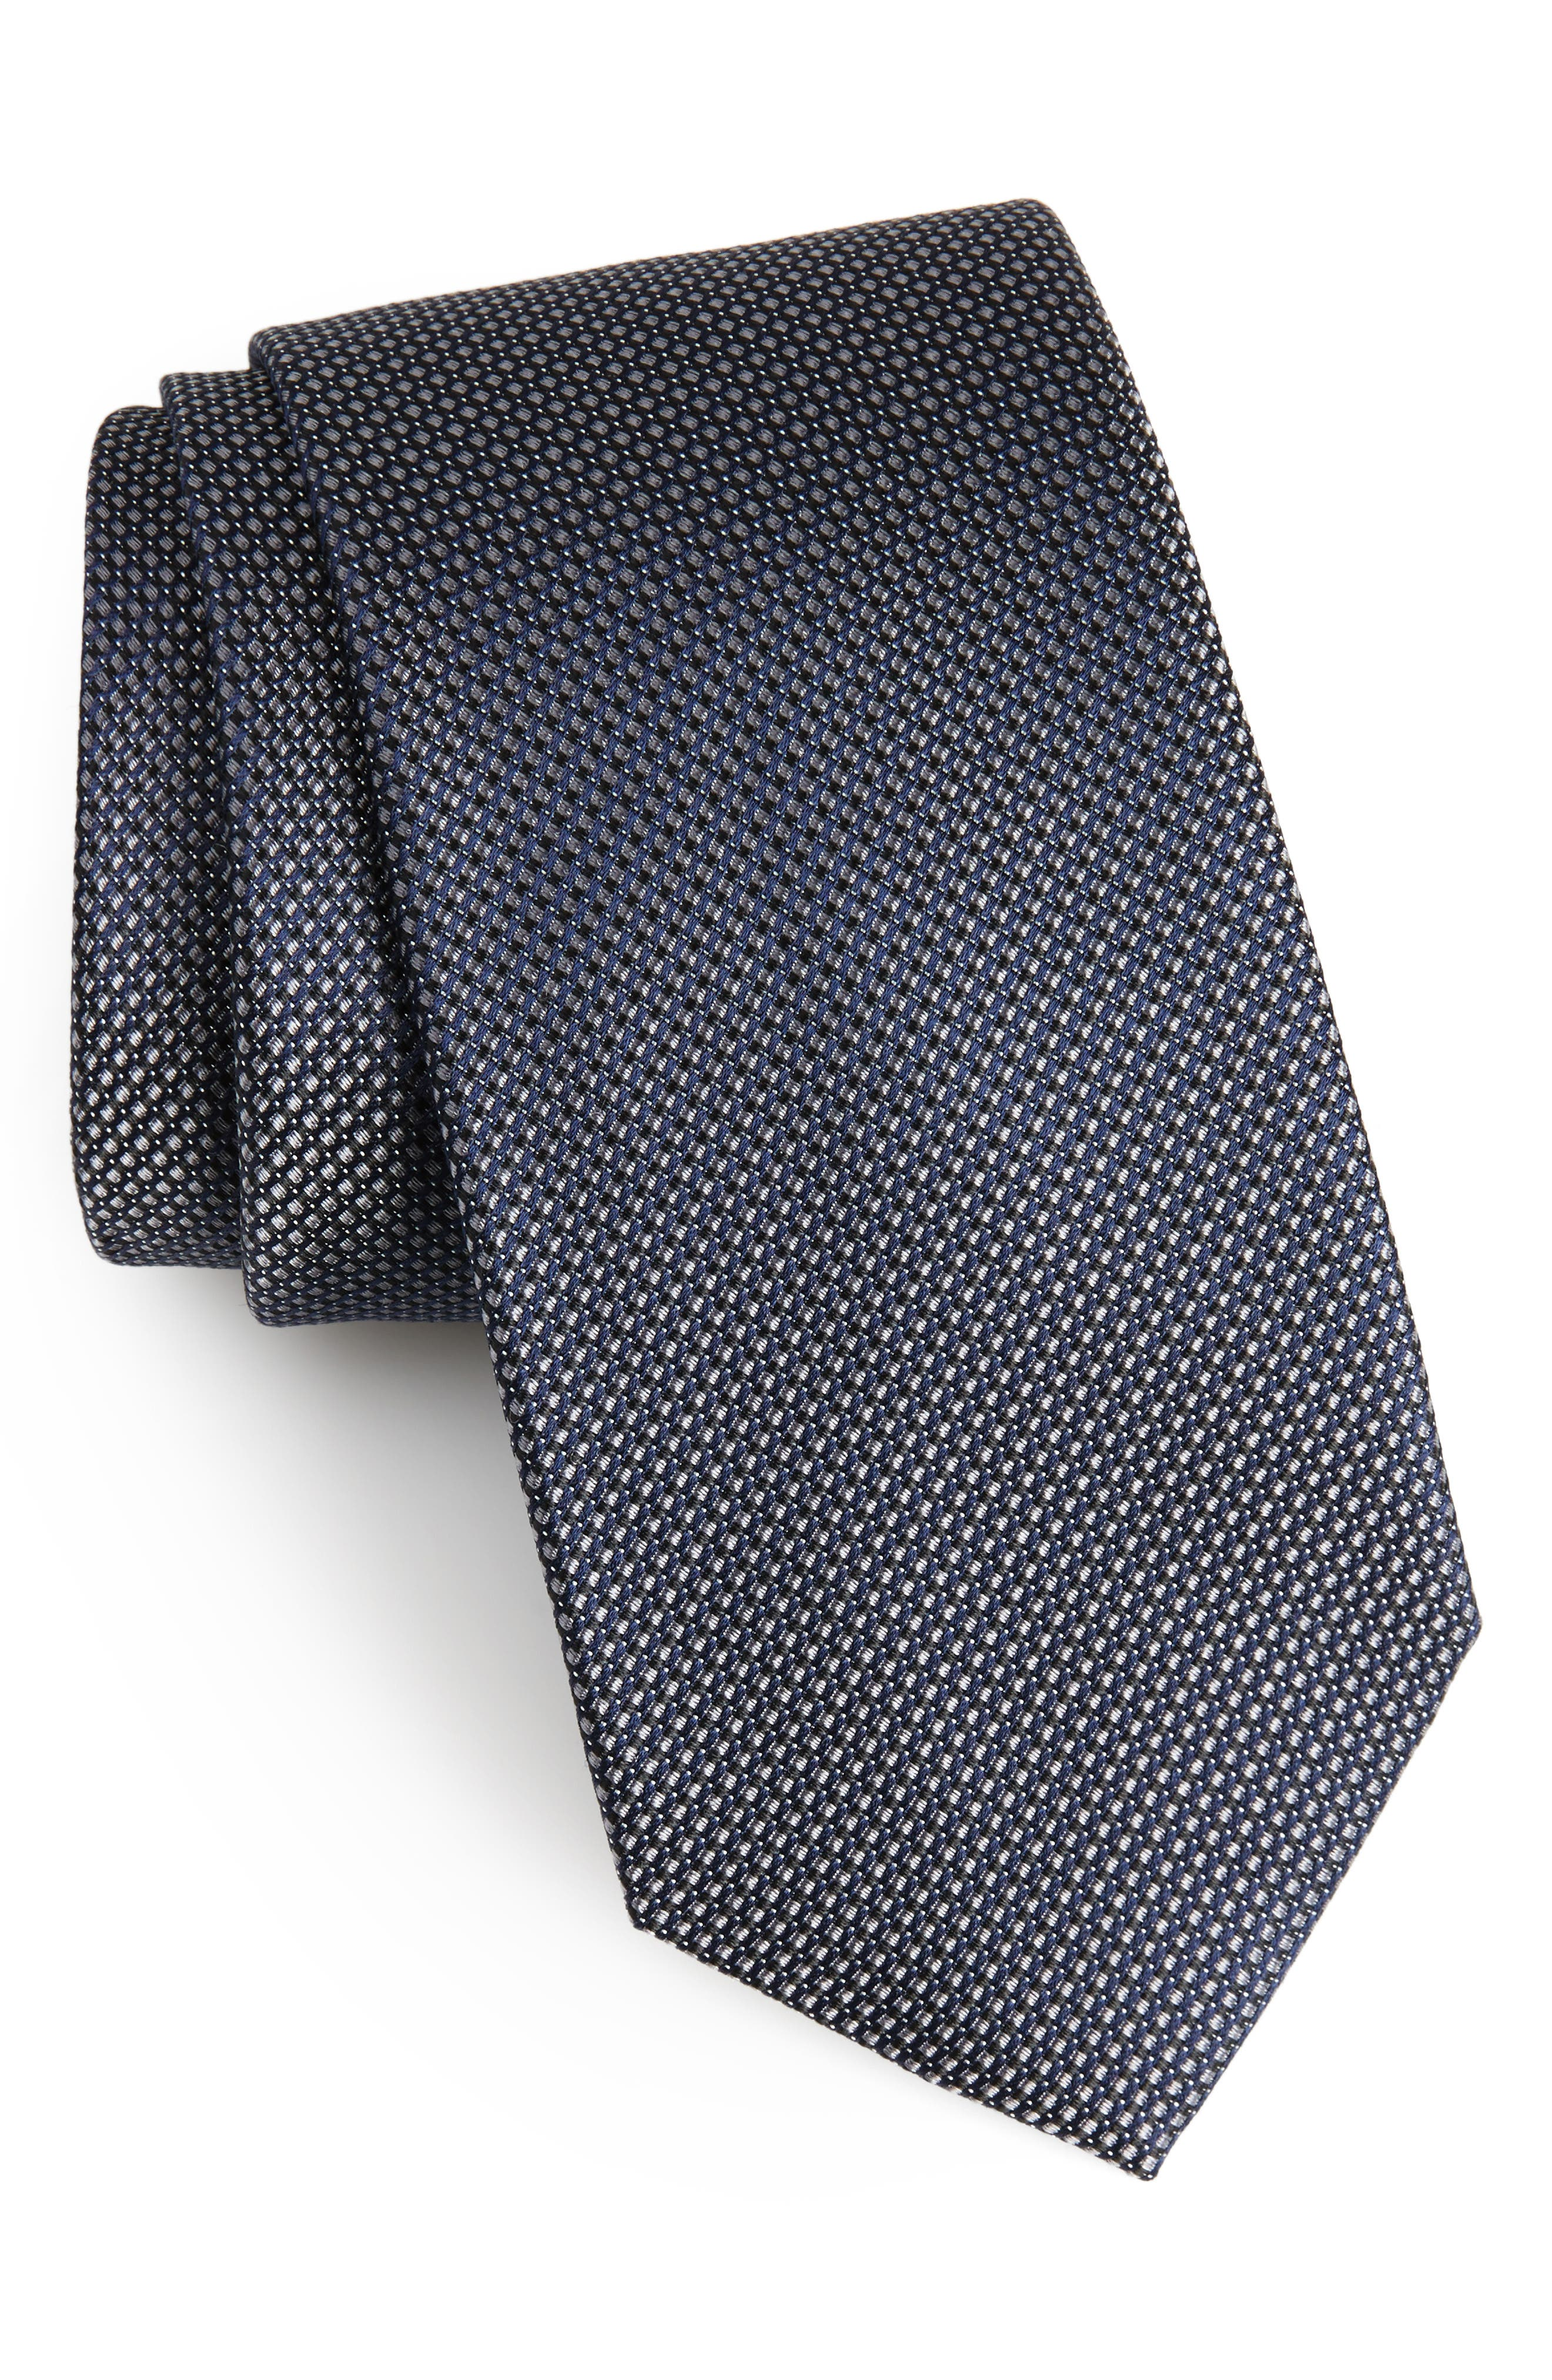 Amsberry Microcheck Silk Tie,                             Main thumbnail 1, color,                             001